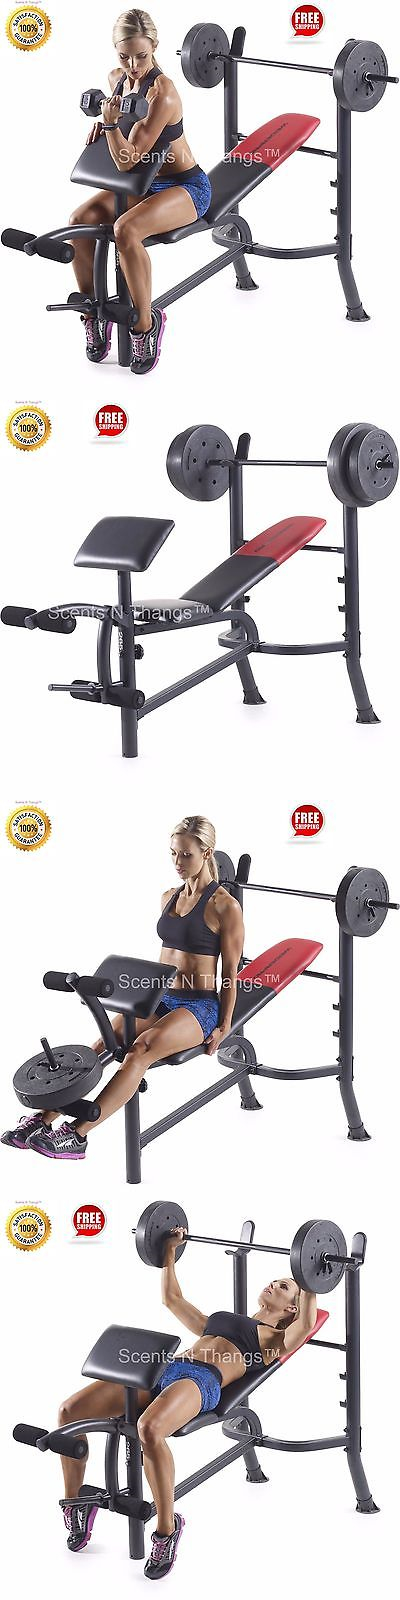 Benches 15281 Weider Pro 265 Standard Bench With 80 Lb Vinyl Weight